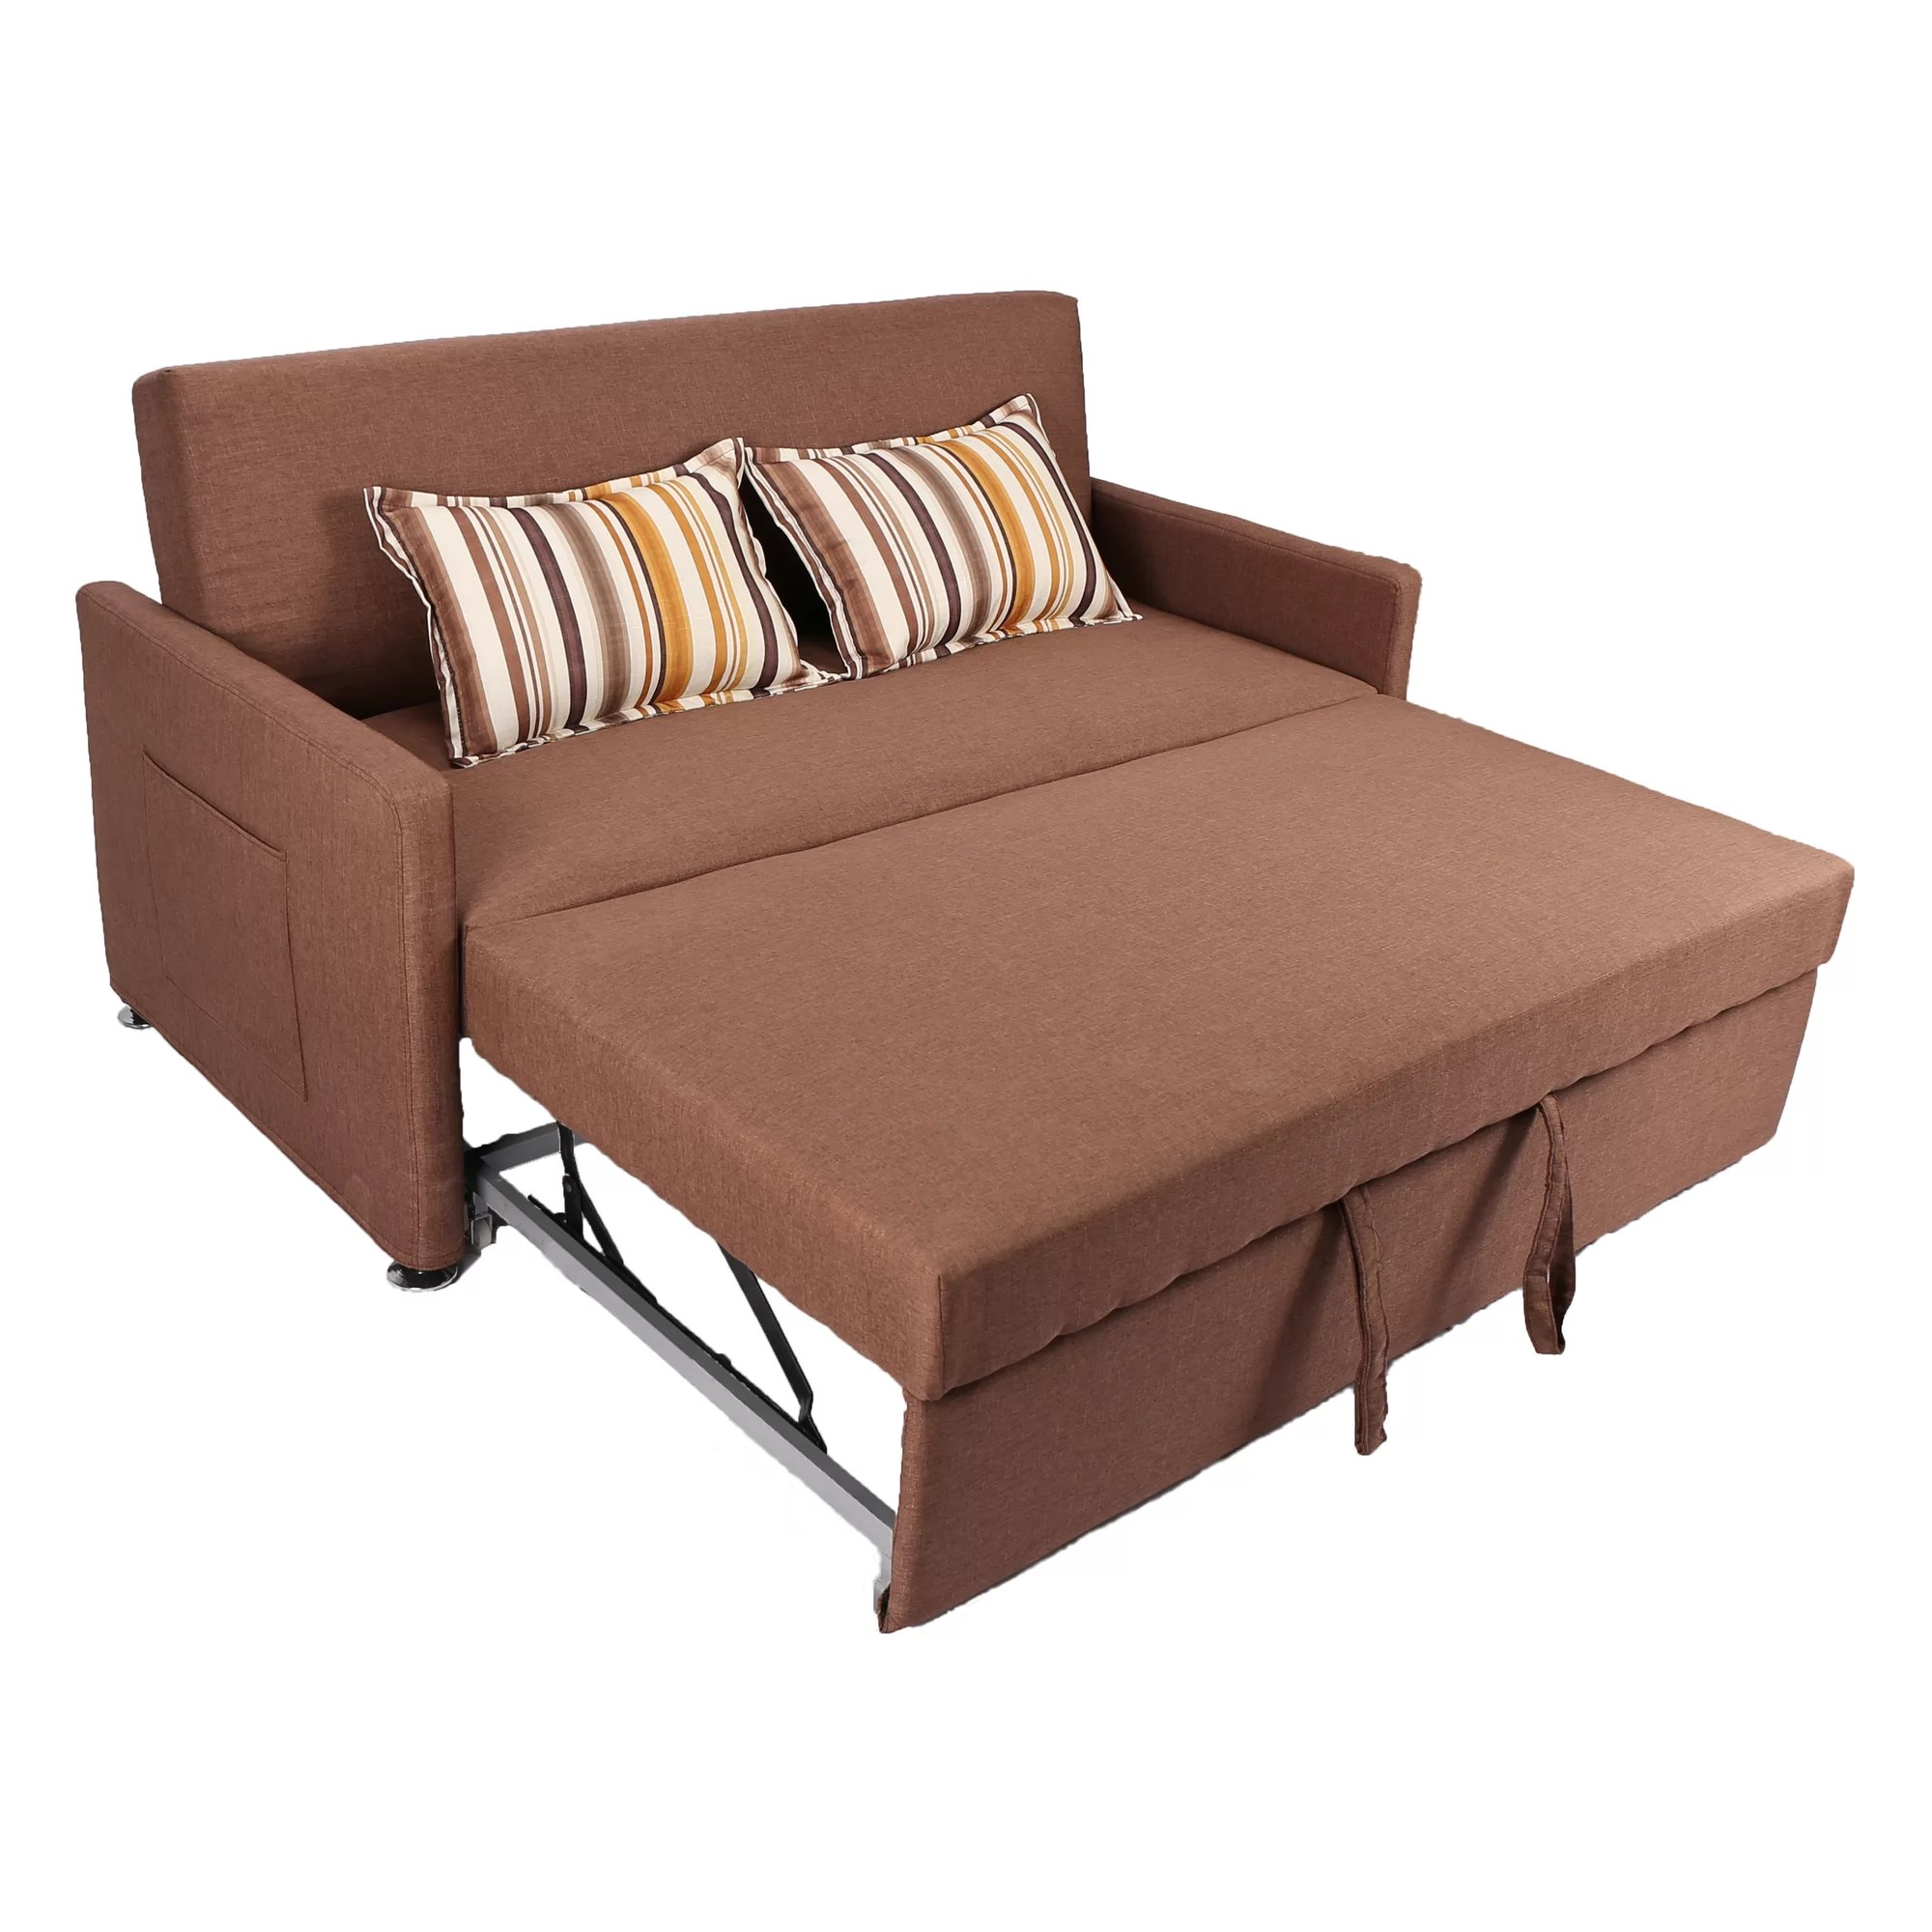 twin pull out sleeper chair best for elderly latitude run corvallis sofa and reviews